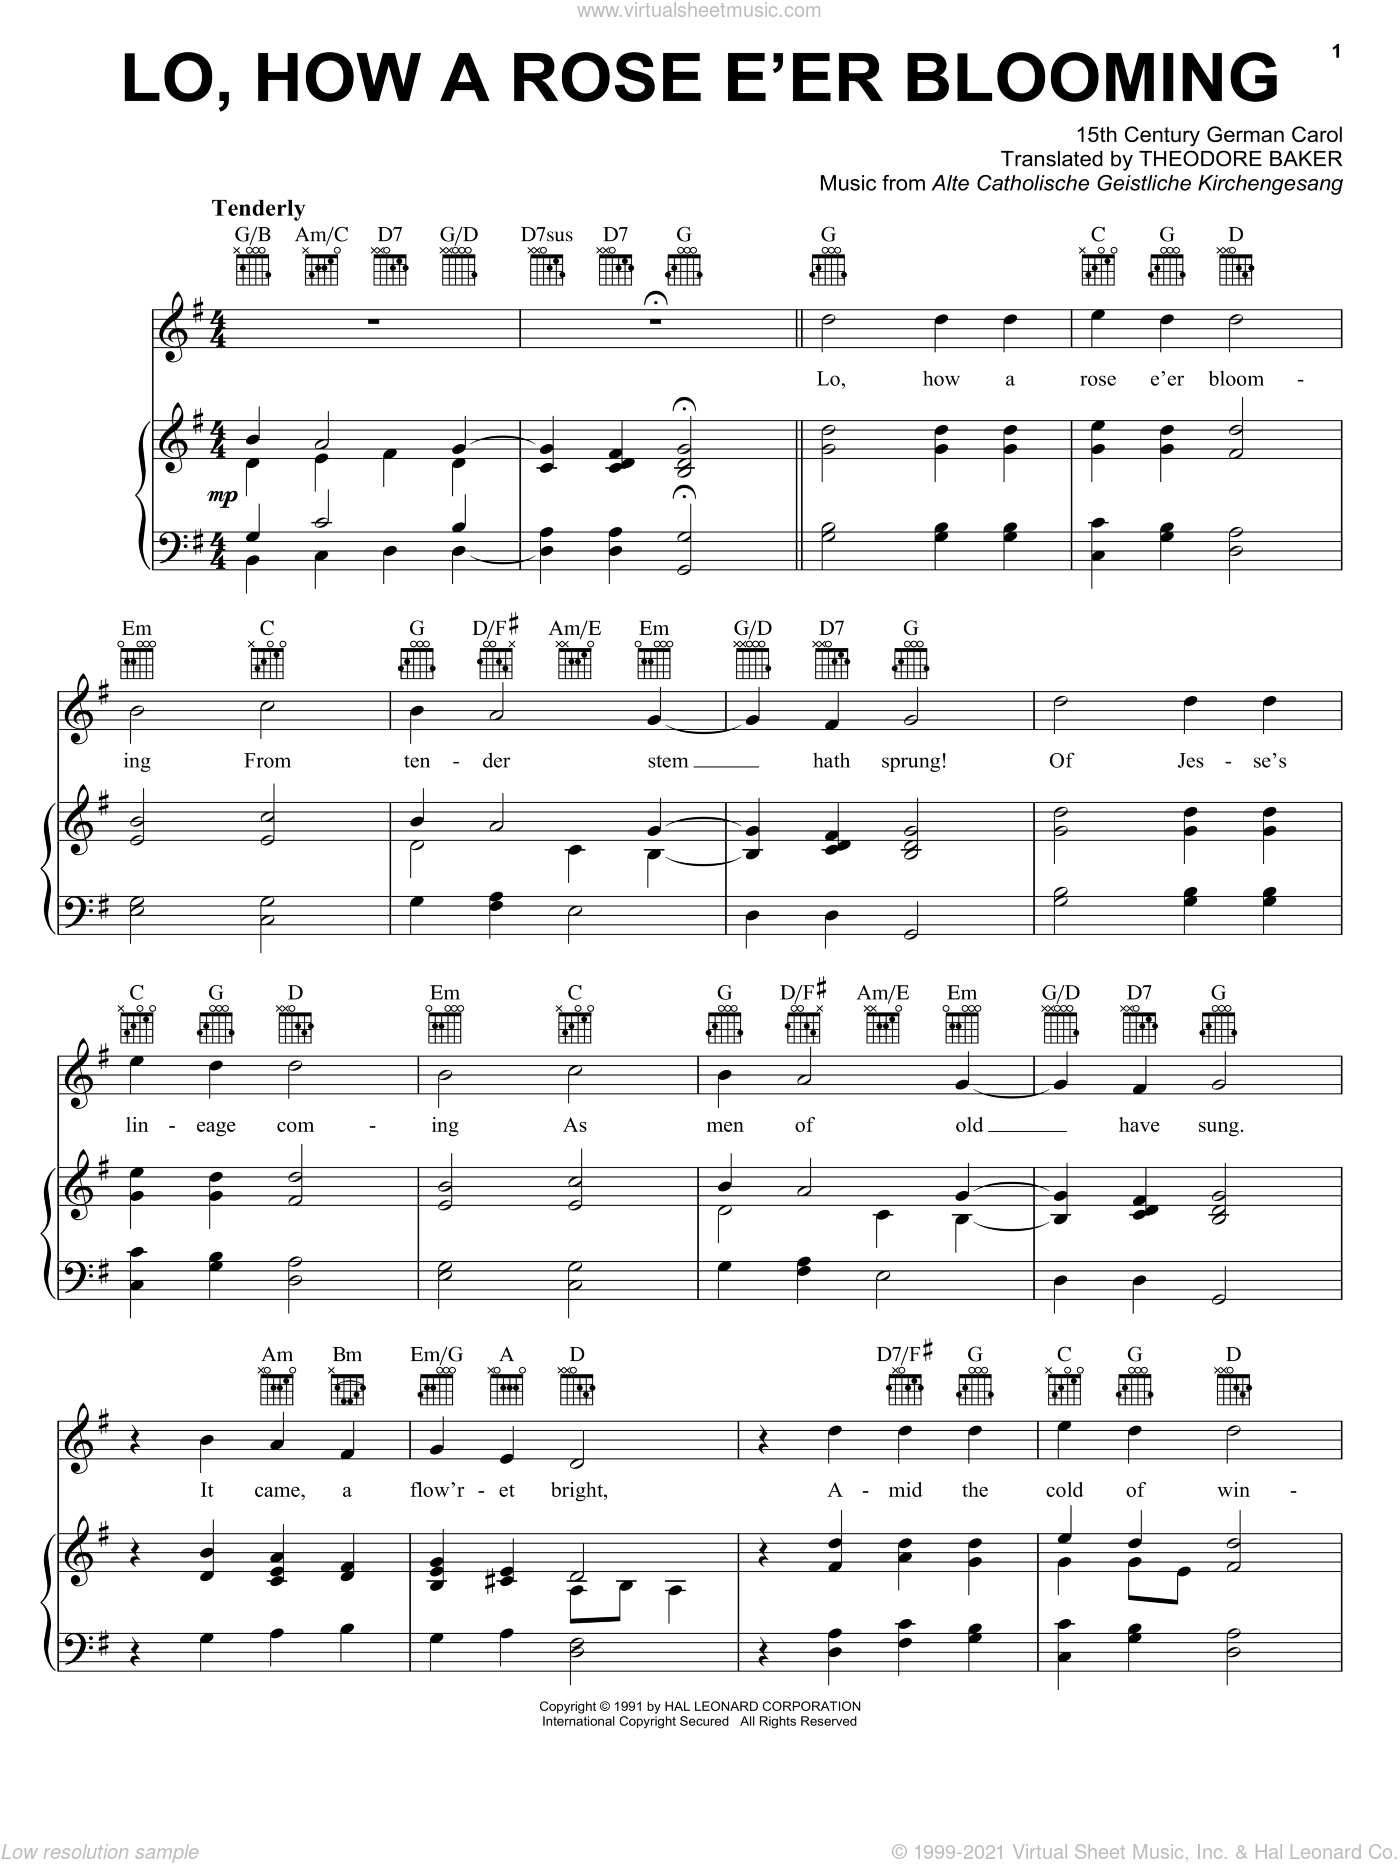 Lo, How A Rose E'er Blooming sheet music for voice, piano or guitar by Alte Catholische Geistliche Ki, 15th Century German Carol and Theodore Baker, classical score, intermediate skill level